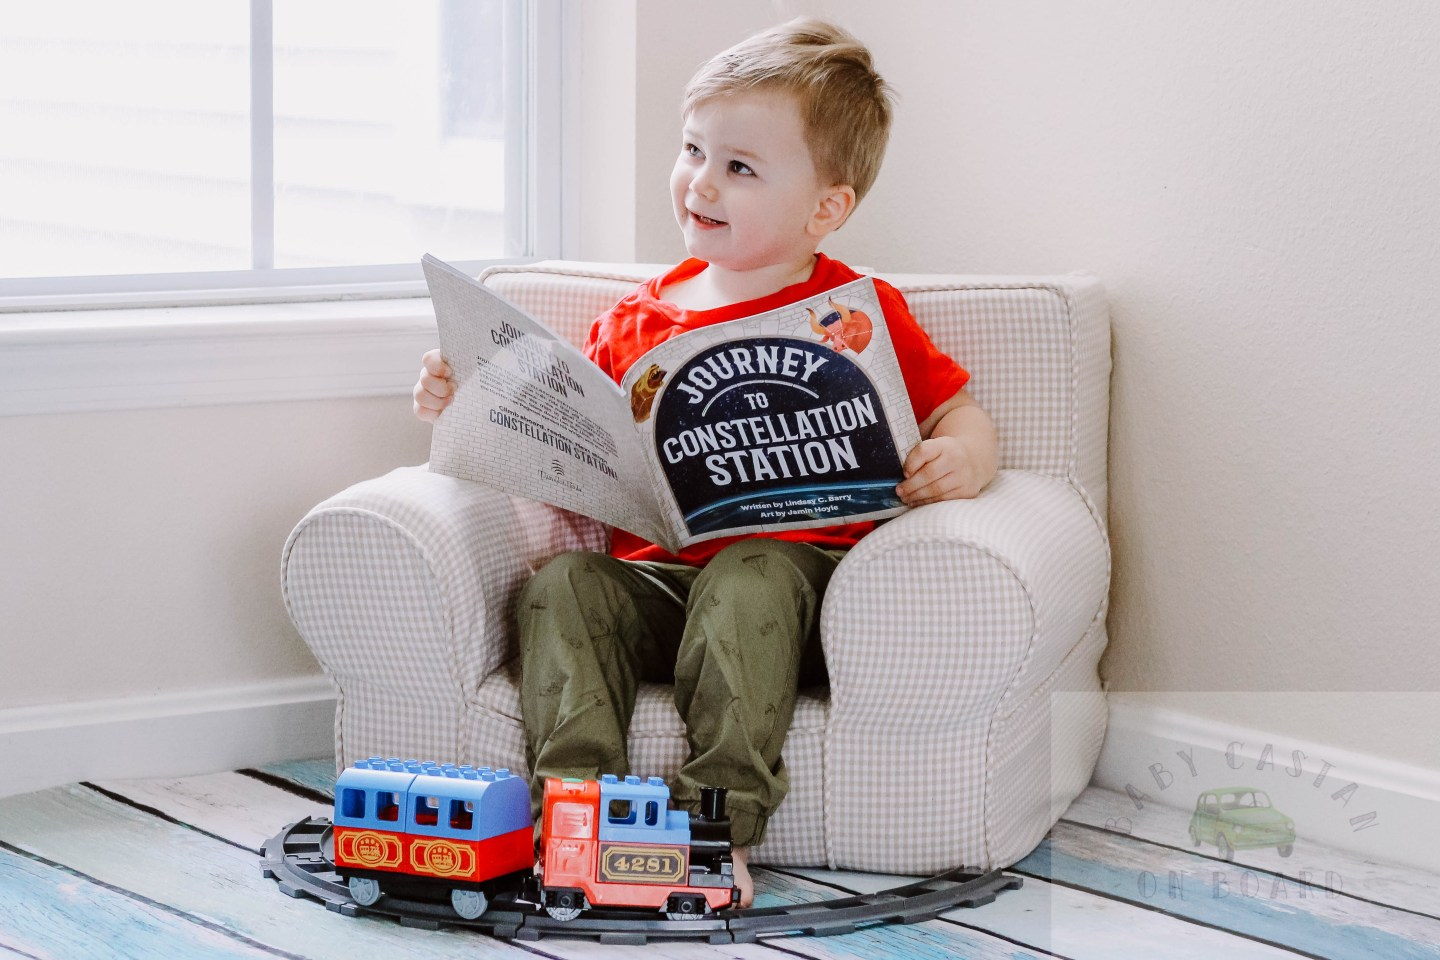 The Journey To Constellation Station Children's Book Author Interview Lindsay Barry by Popular DC Mommy Blogger Baby Castan on Board